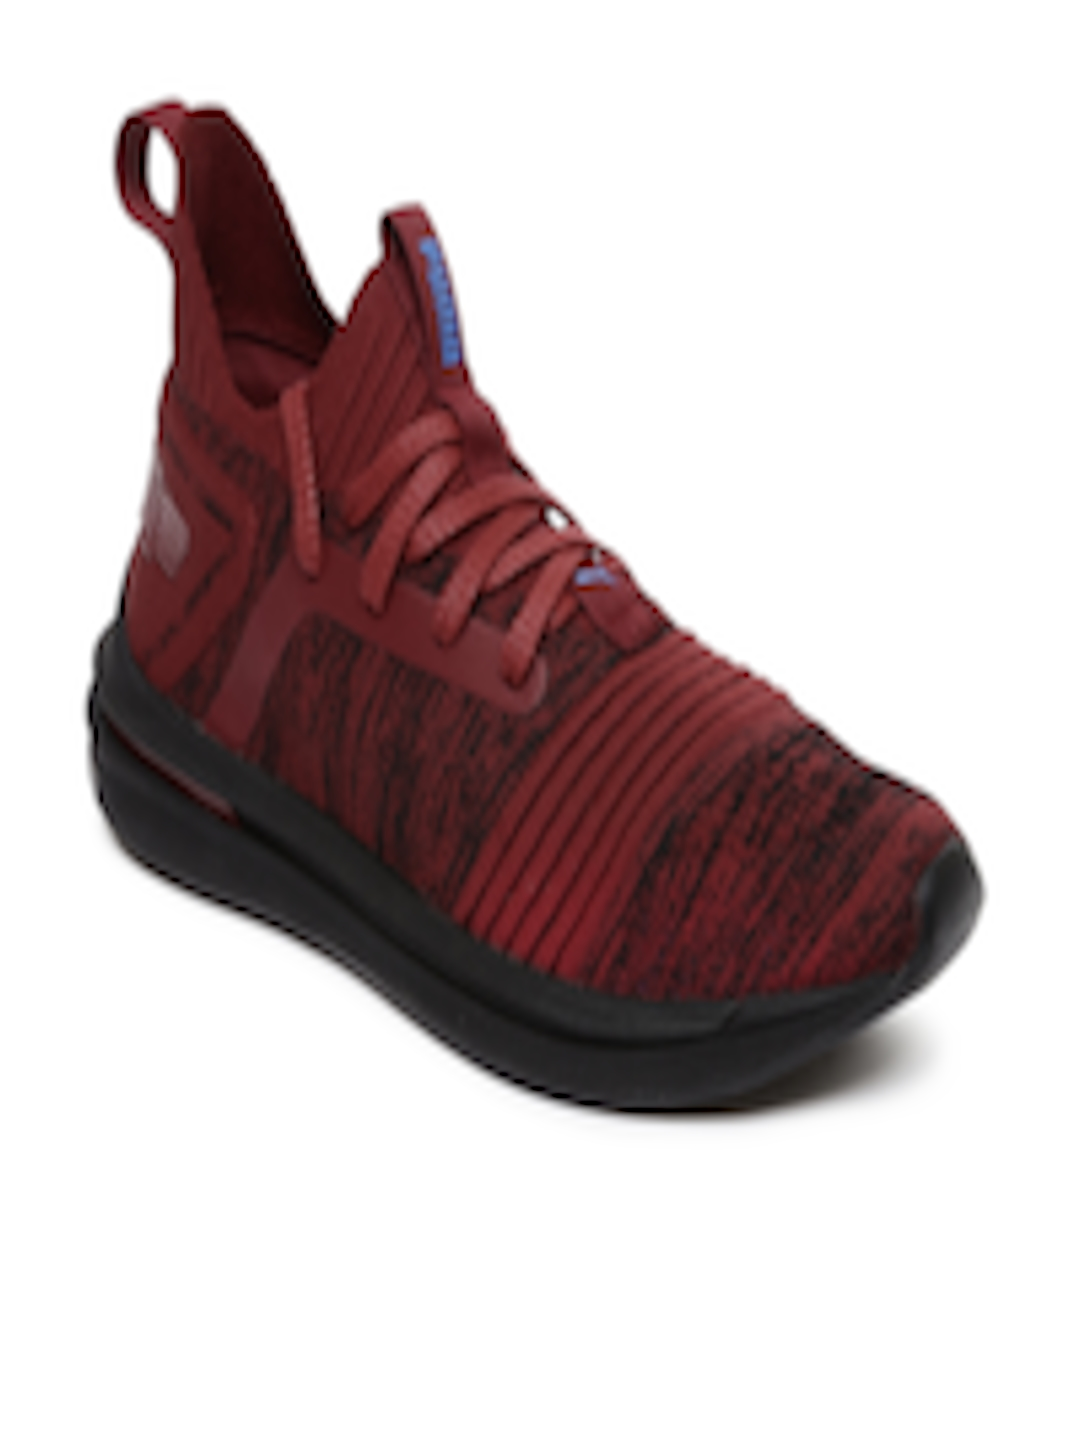 reputable site 0e74b 32448 Buy Puma Men Maroon & Black IGNITE Limitless SR EvoKNIT Running Shoes - -  Footwear for Men